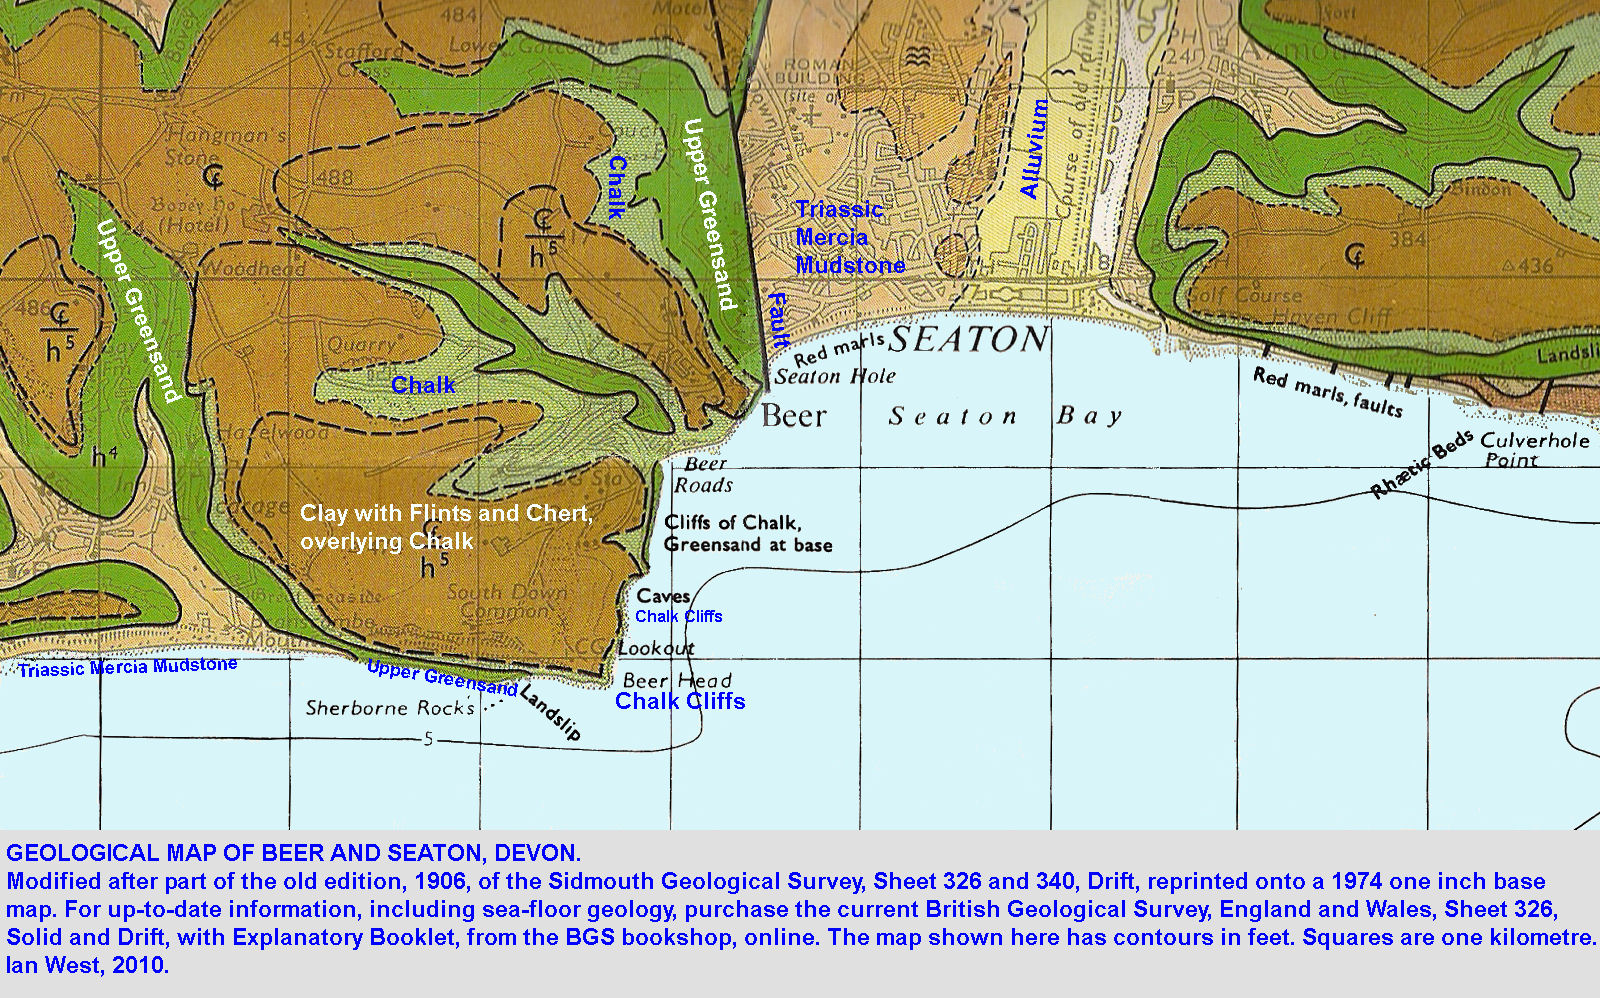 Beer And Seaton Geological Field Guide By Ian West - Portugal geology map